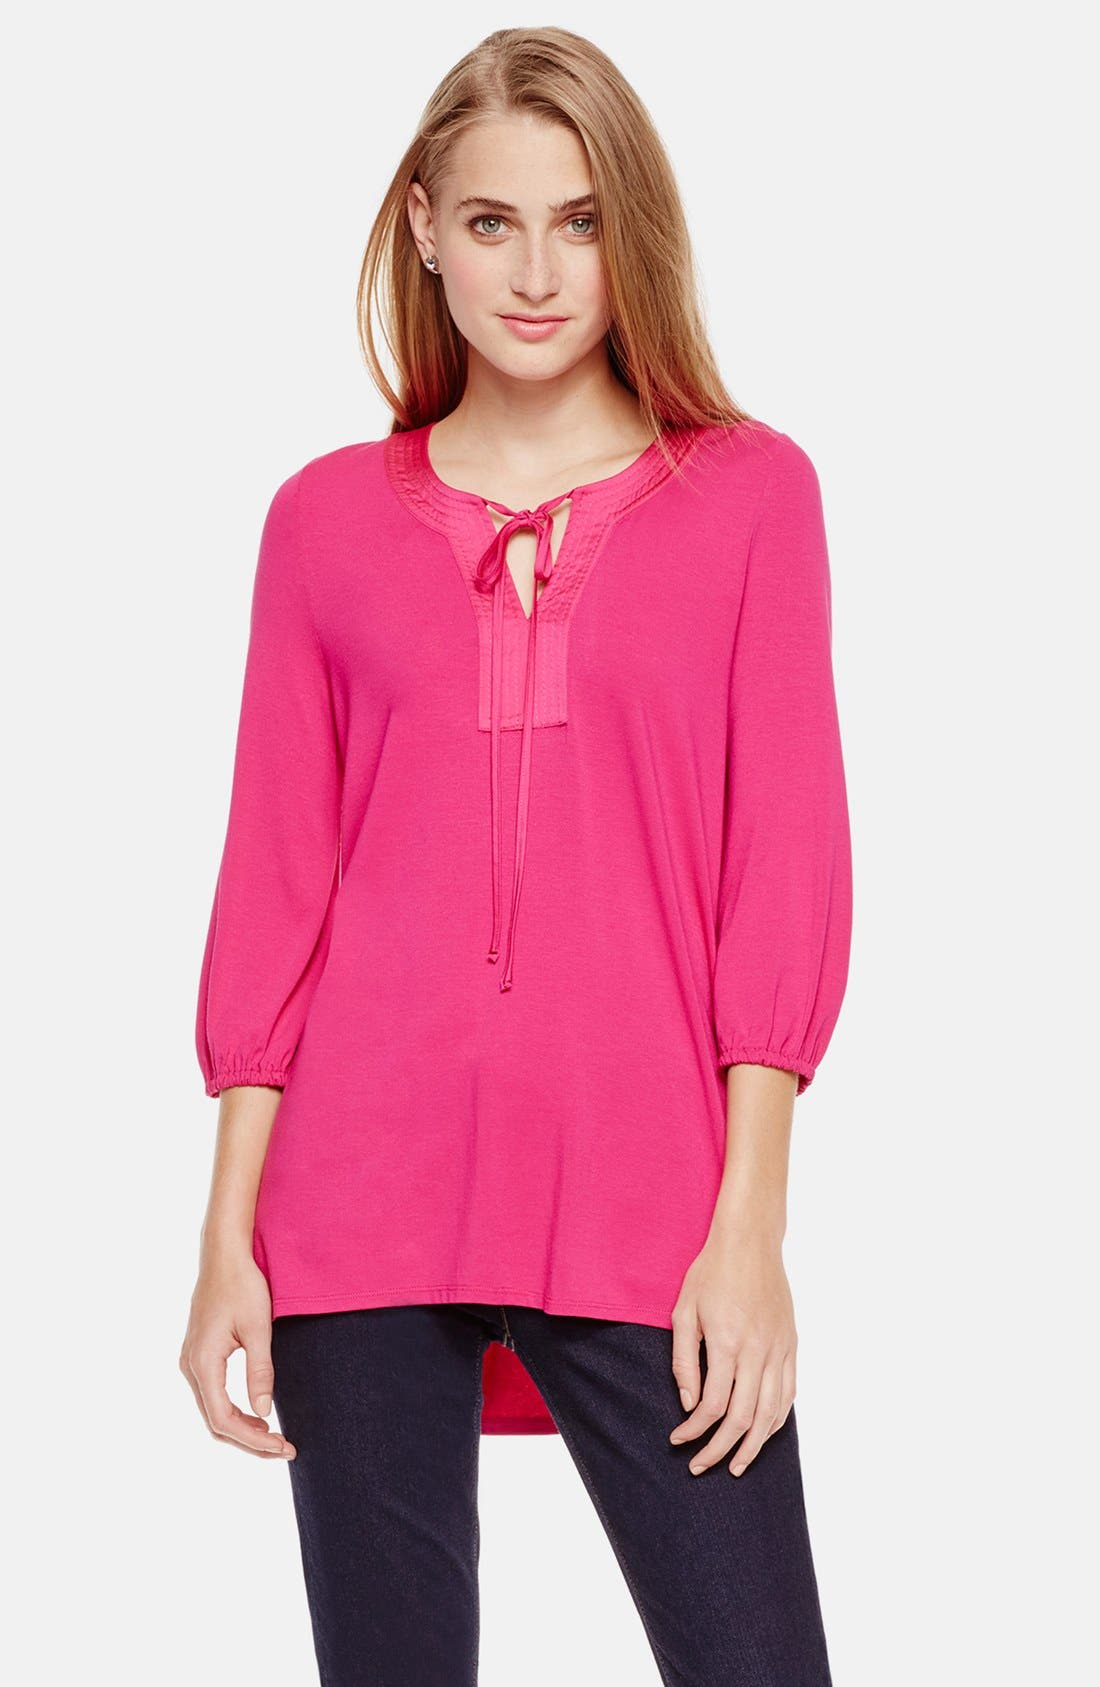 Alternate Image 1 Selected - Two by Vince Camuto Peasant Style Tunic